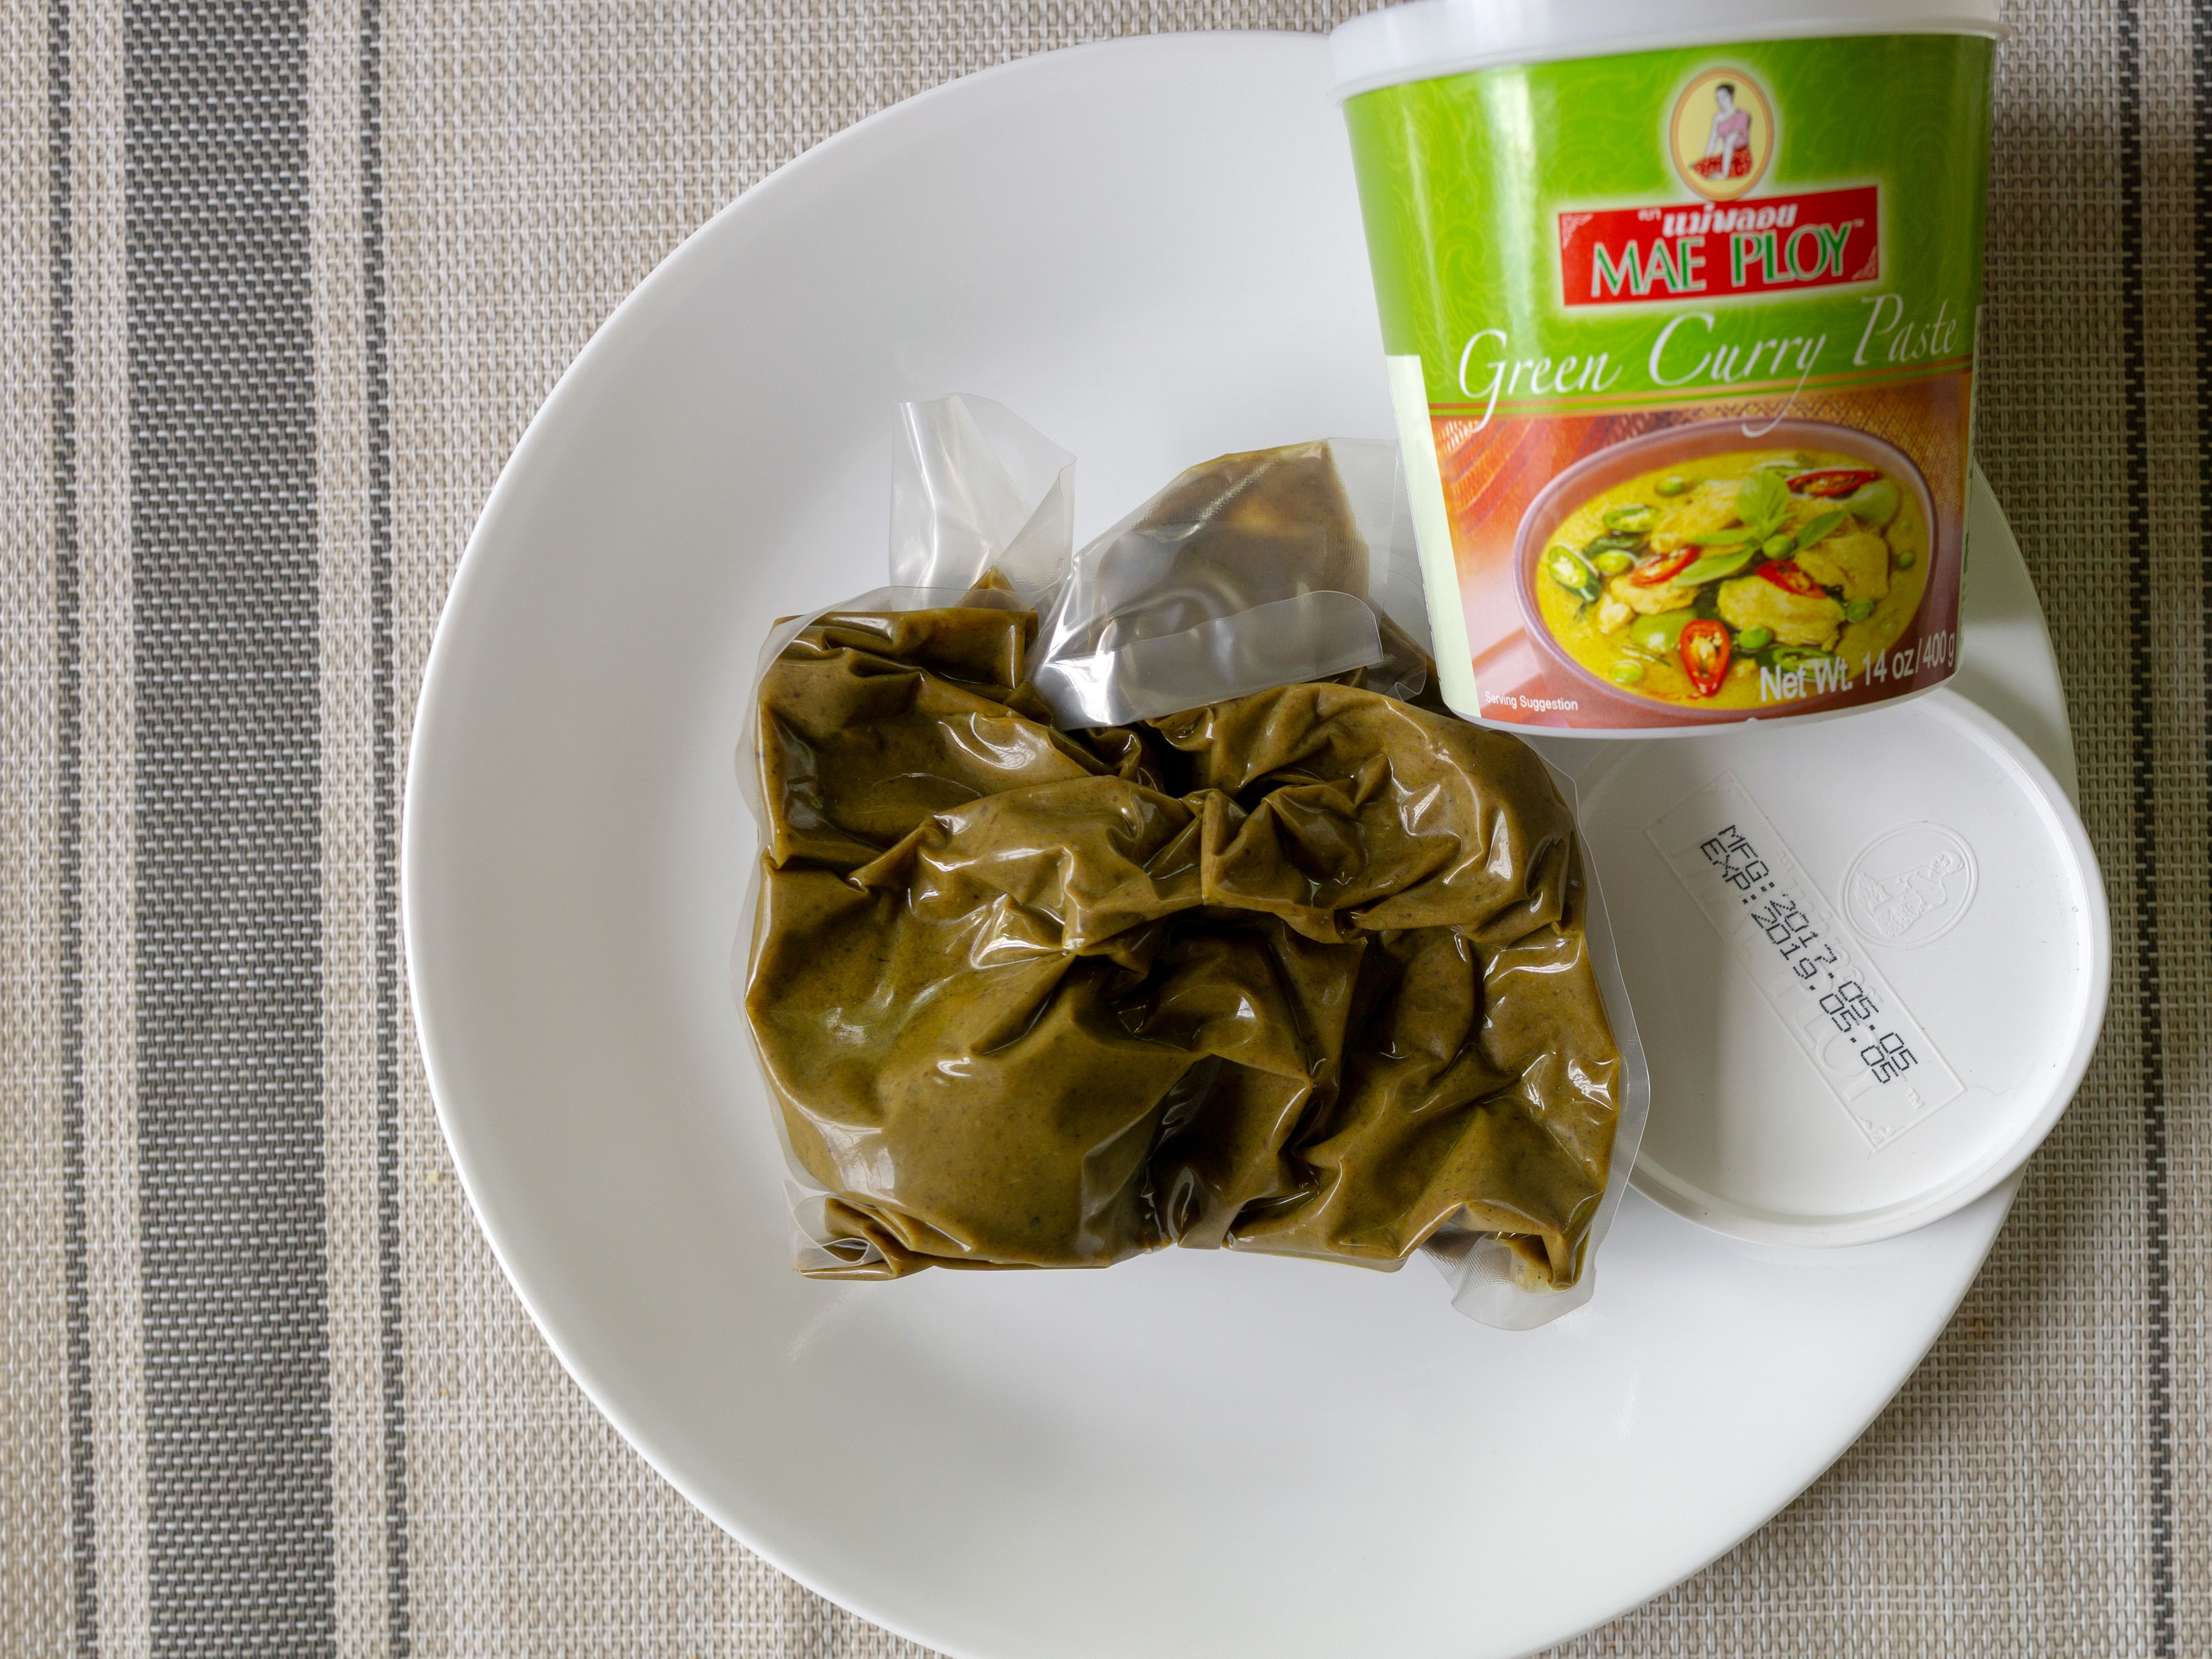 Mae Ploy Green Curry Paste - what's in the container